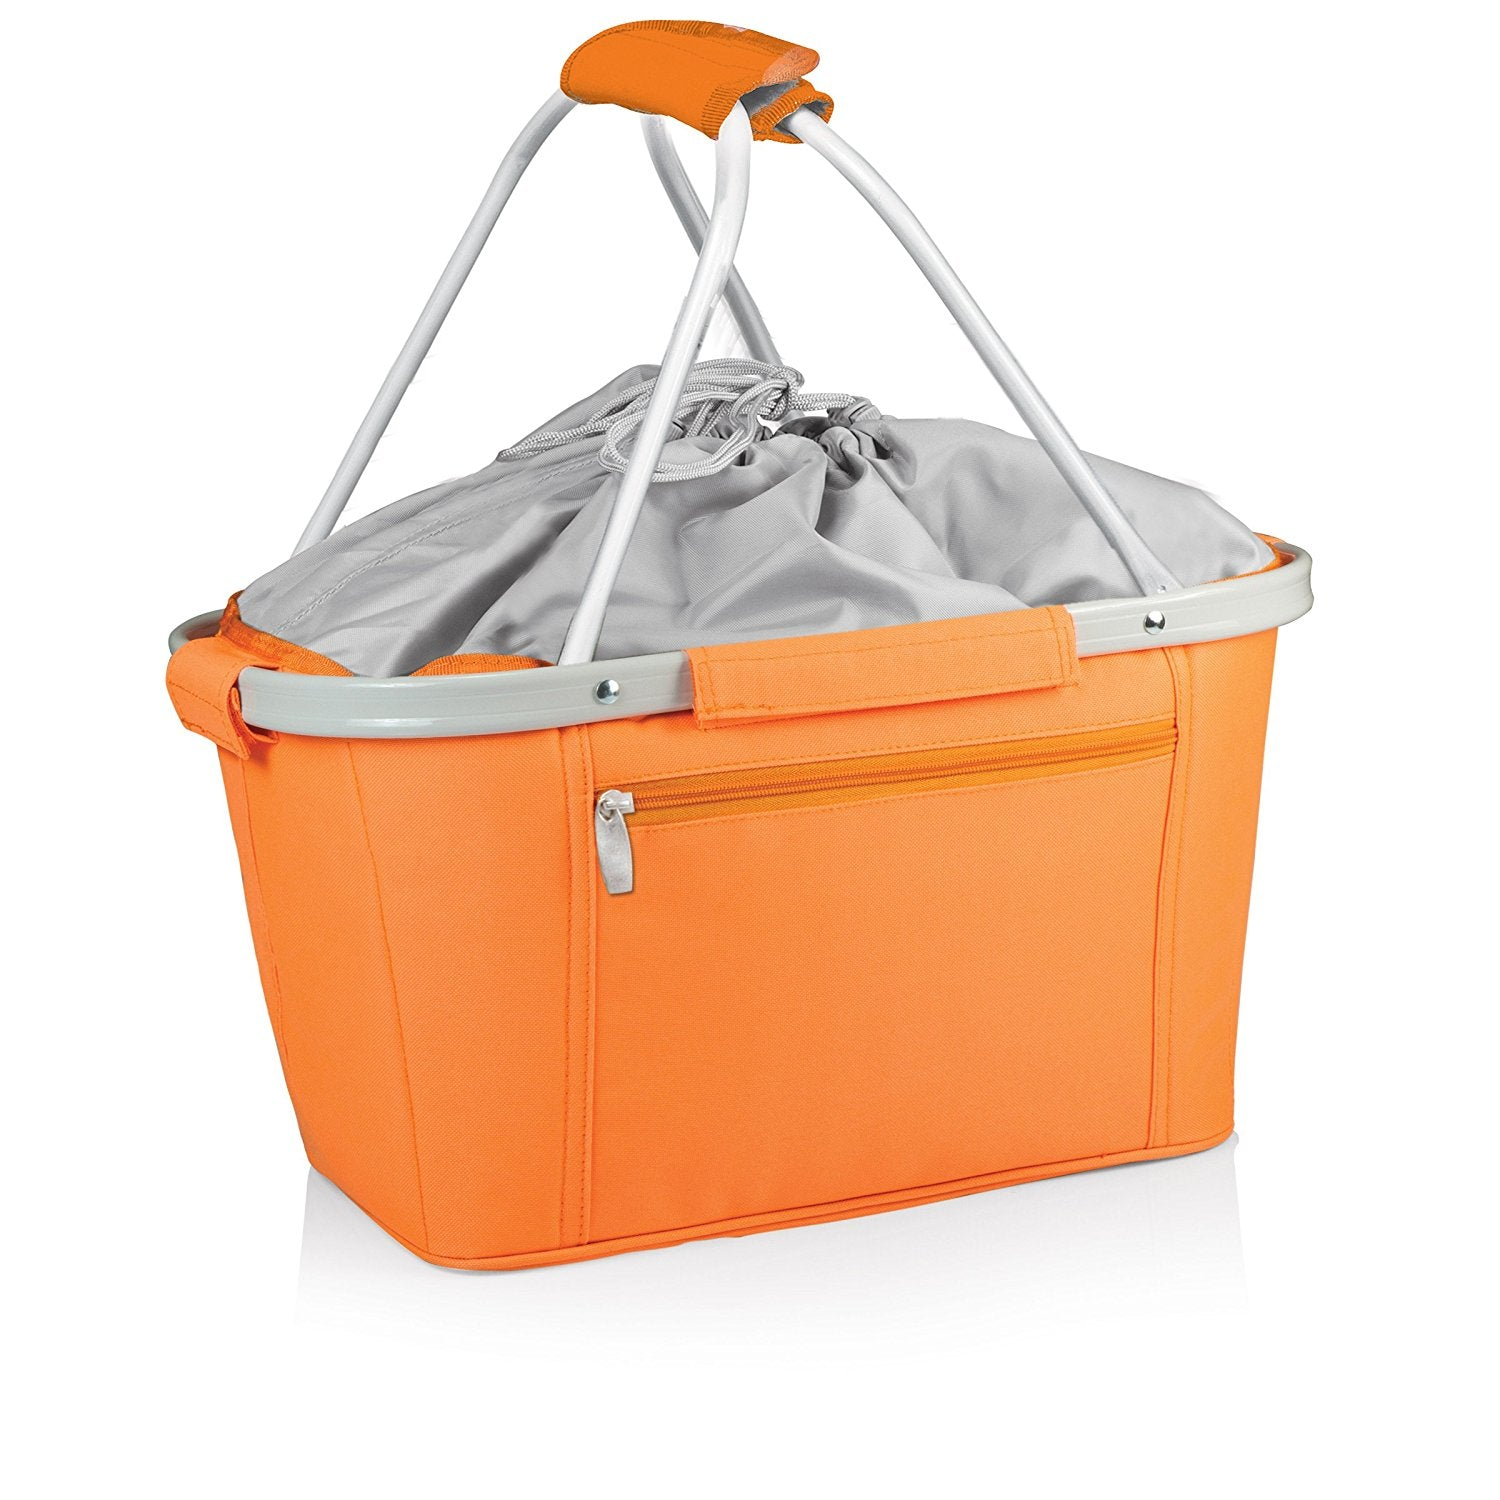 Metro Insulated & Collapsible Shopping Basket